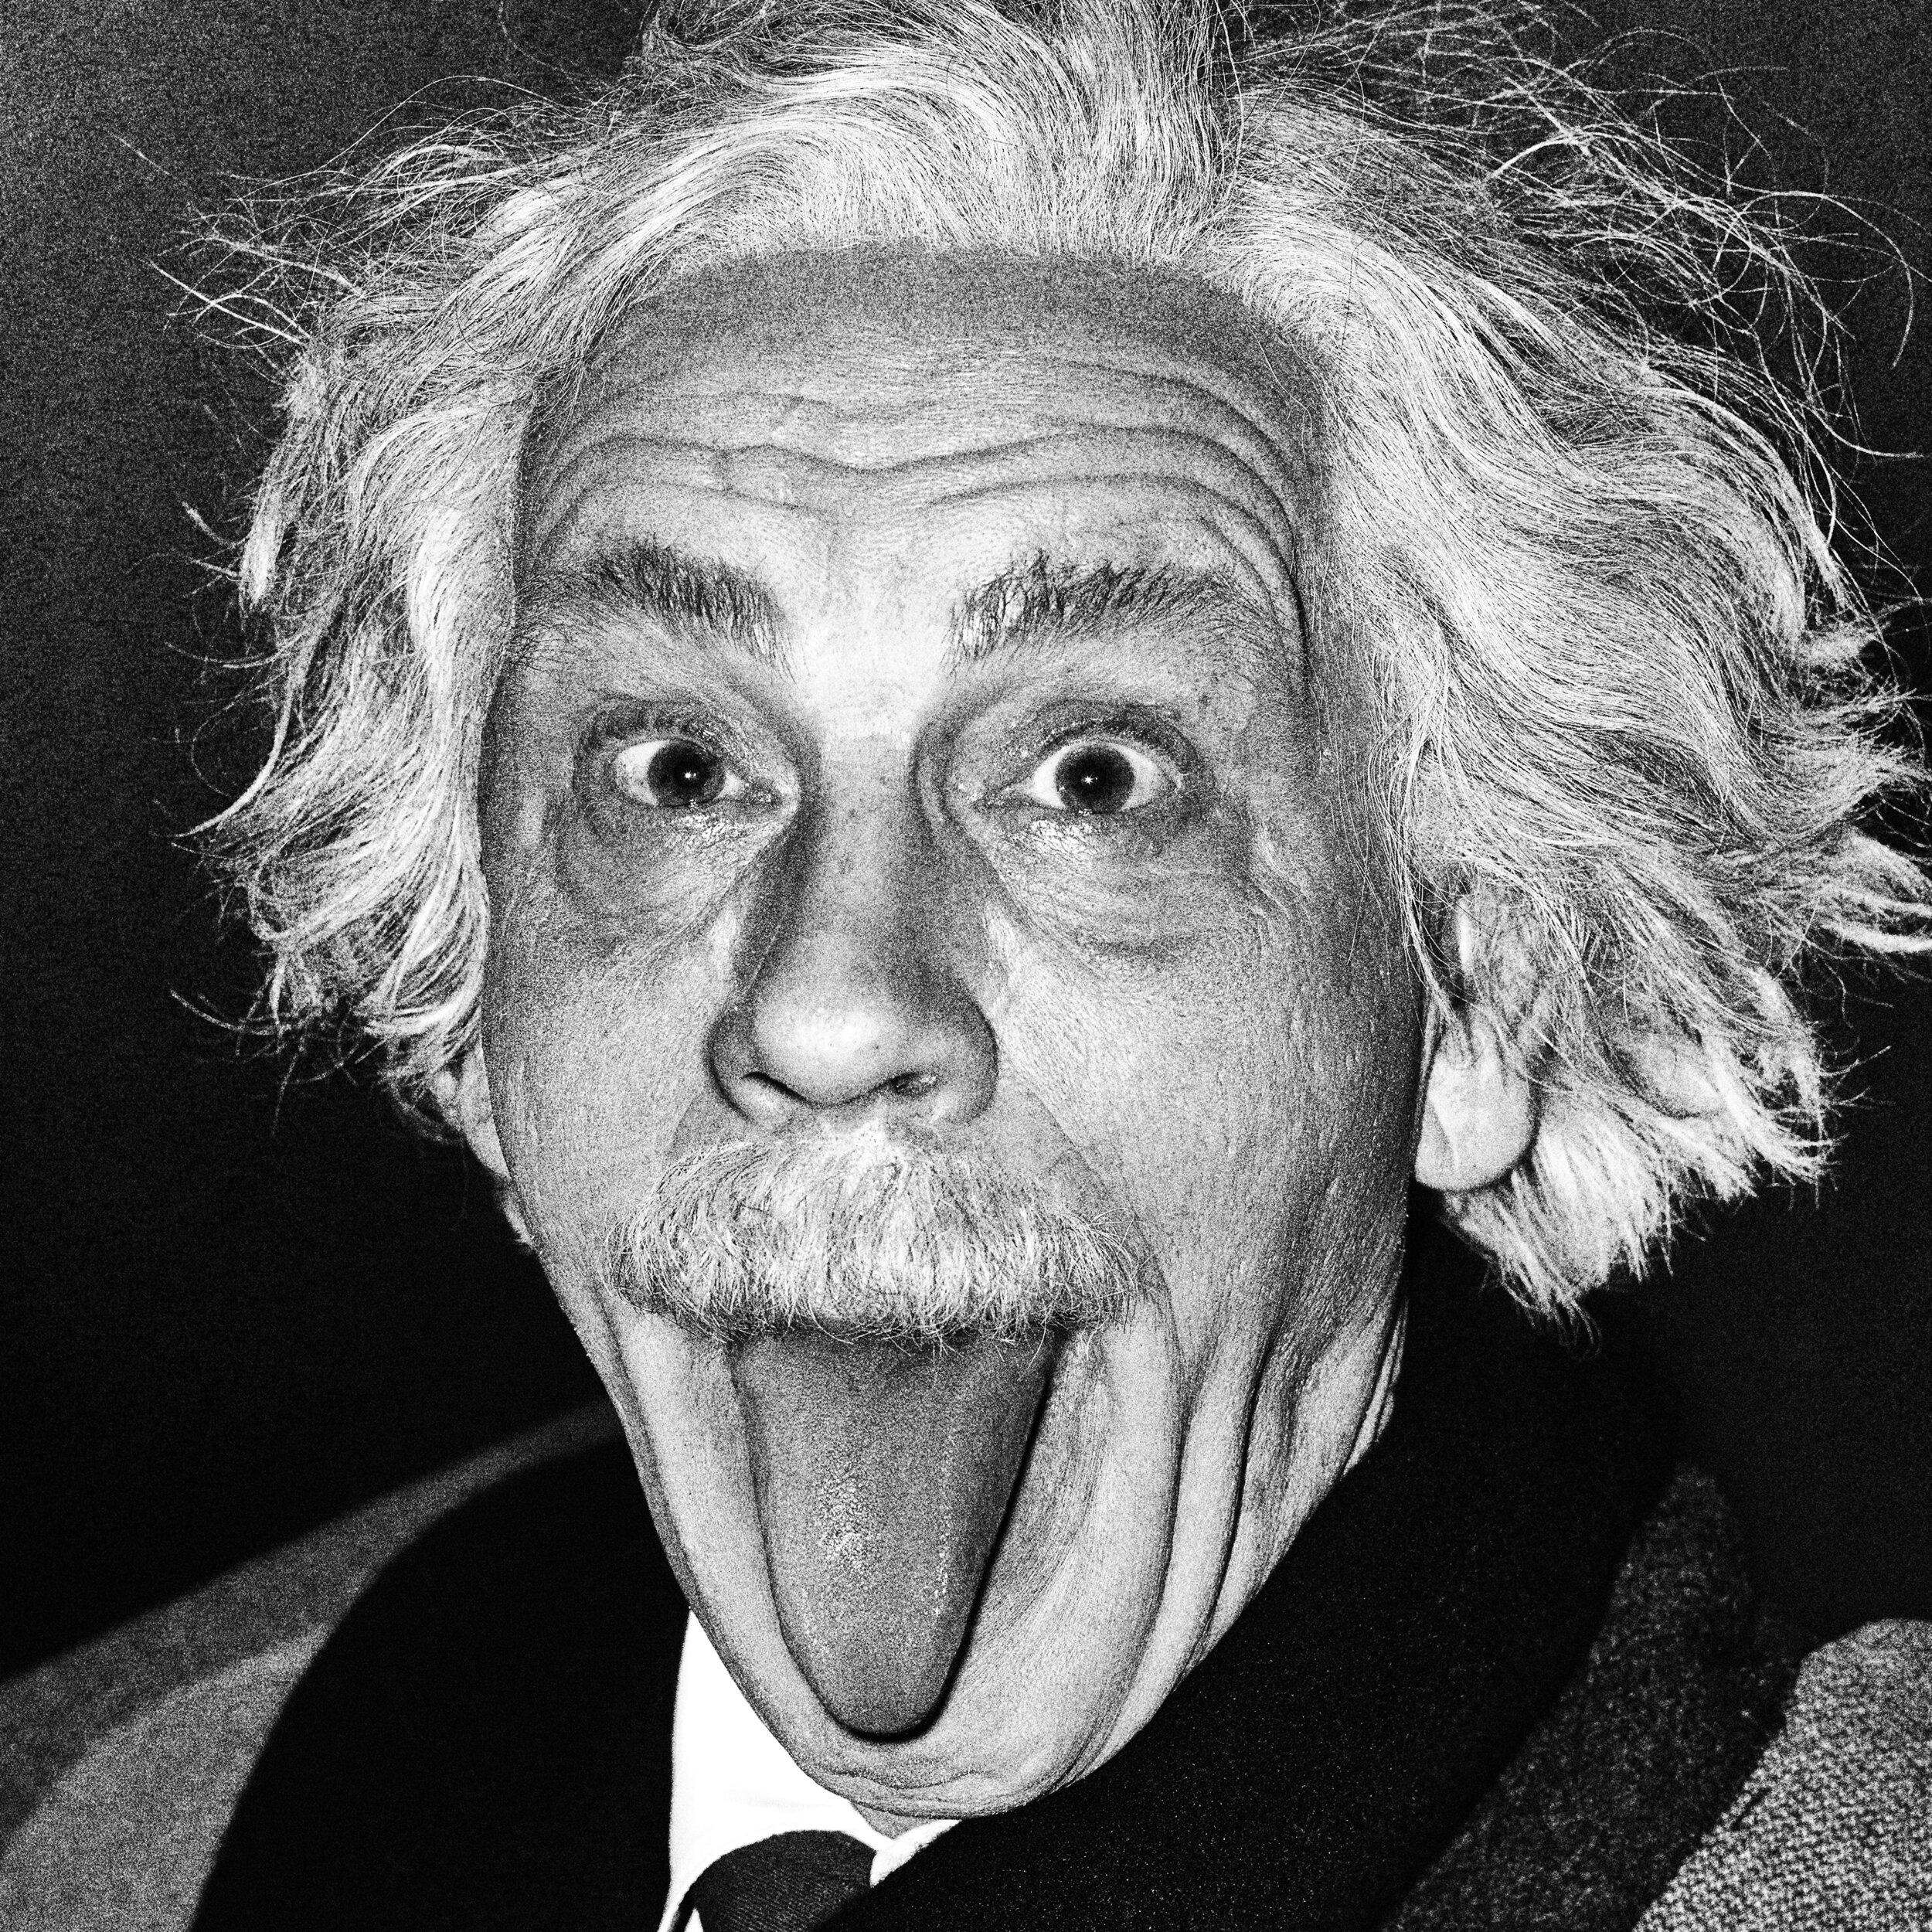 Arthur Sasse _ Albert Einstein Sticking Out His Tongue (1951), 2014.jpg